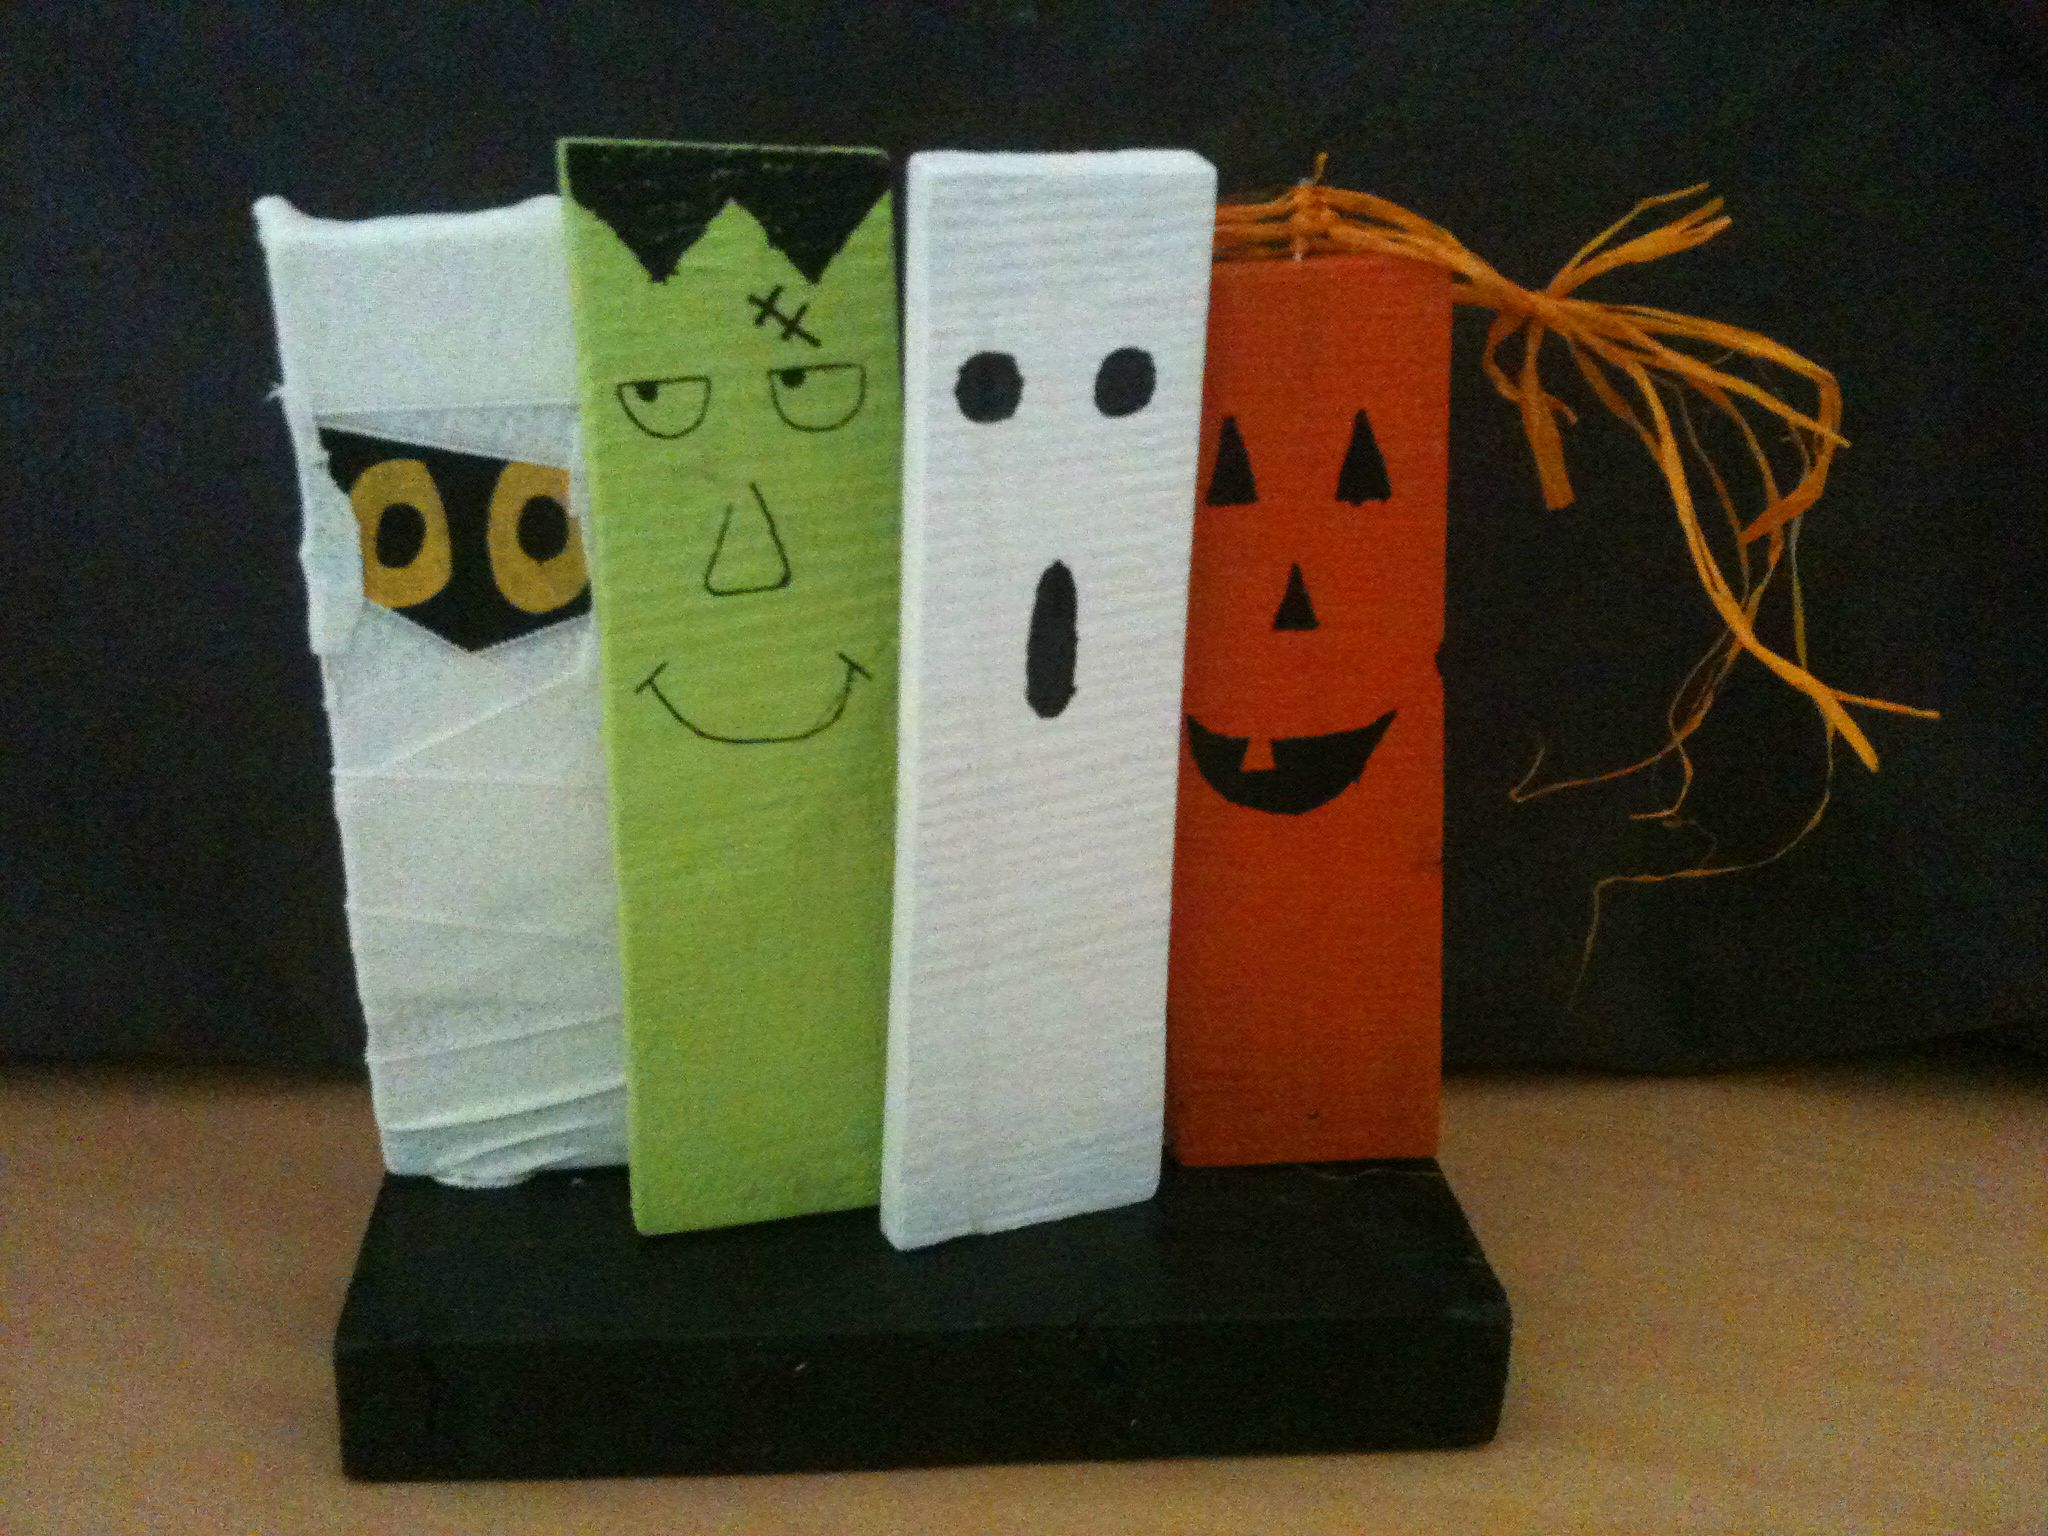 d co halloween photo de brico d co bois papier caillou ciseaux le blog. Black Bedroom Furniture Sets. Home Design Ideas